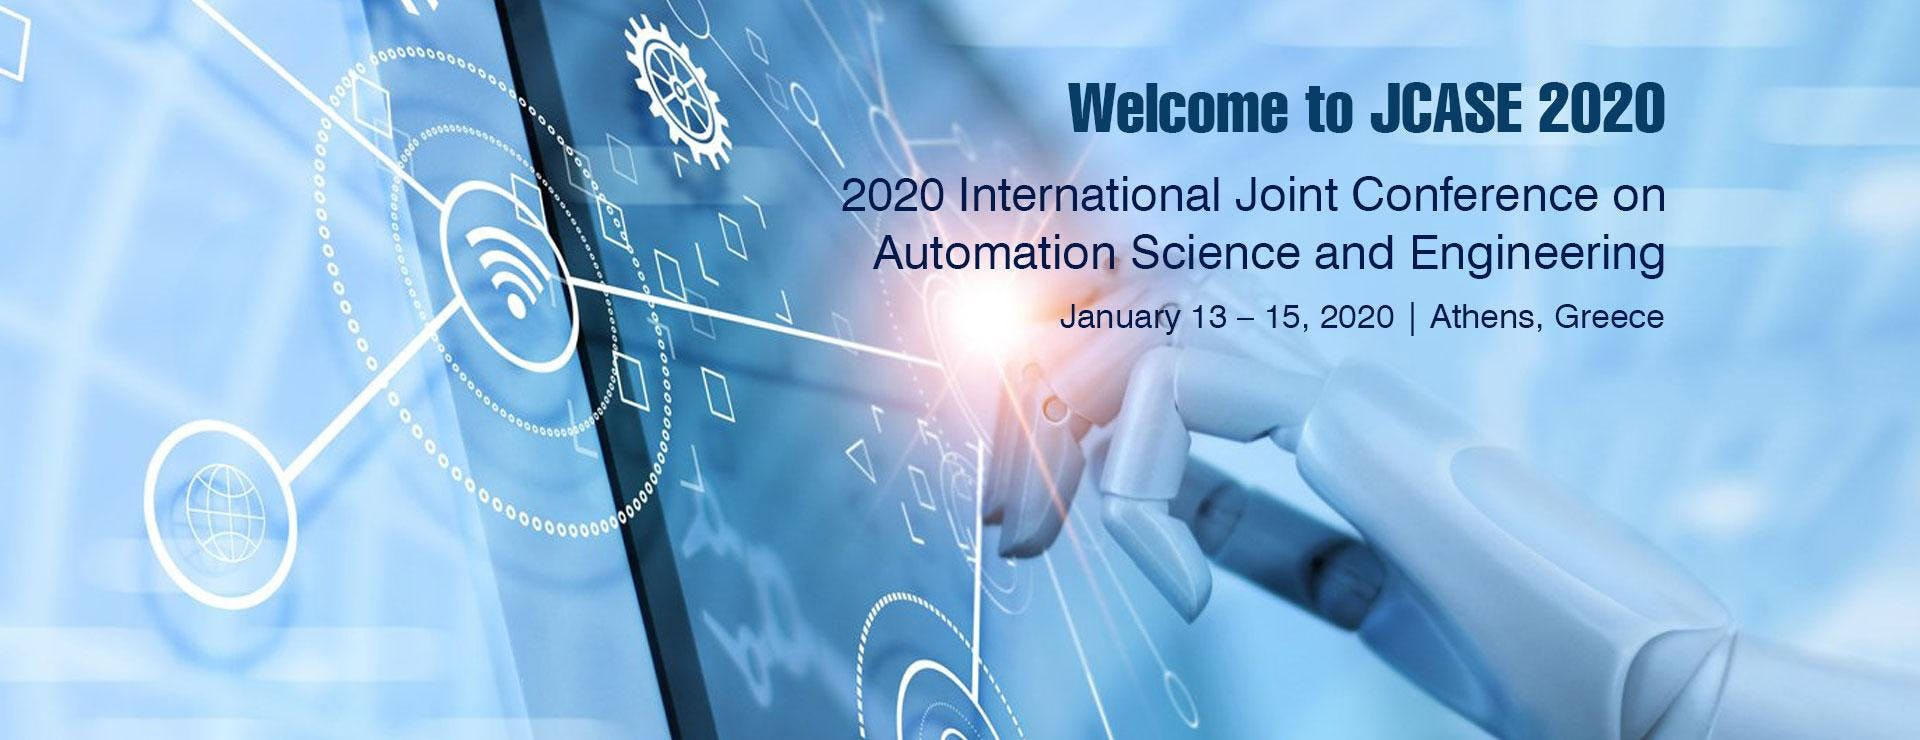 2020 International Joint Conference on Automation Science and Engineering (JCASE 2020)